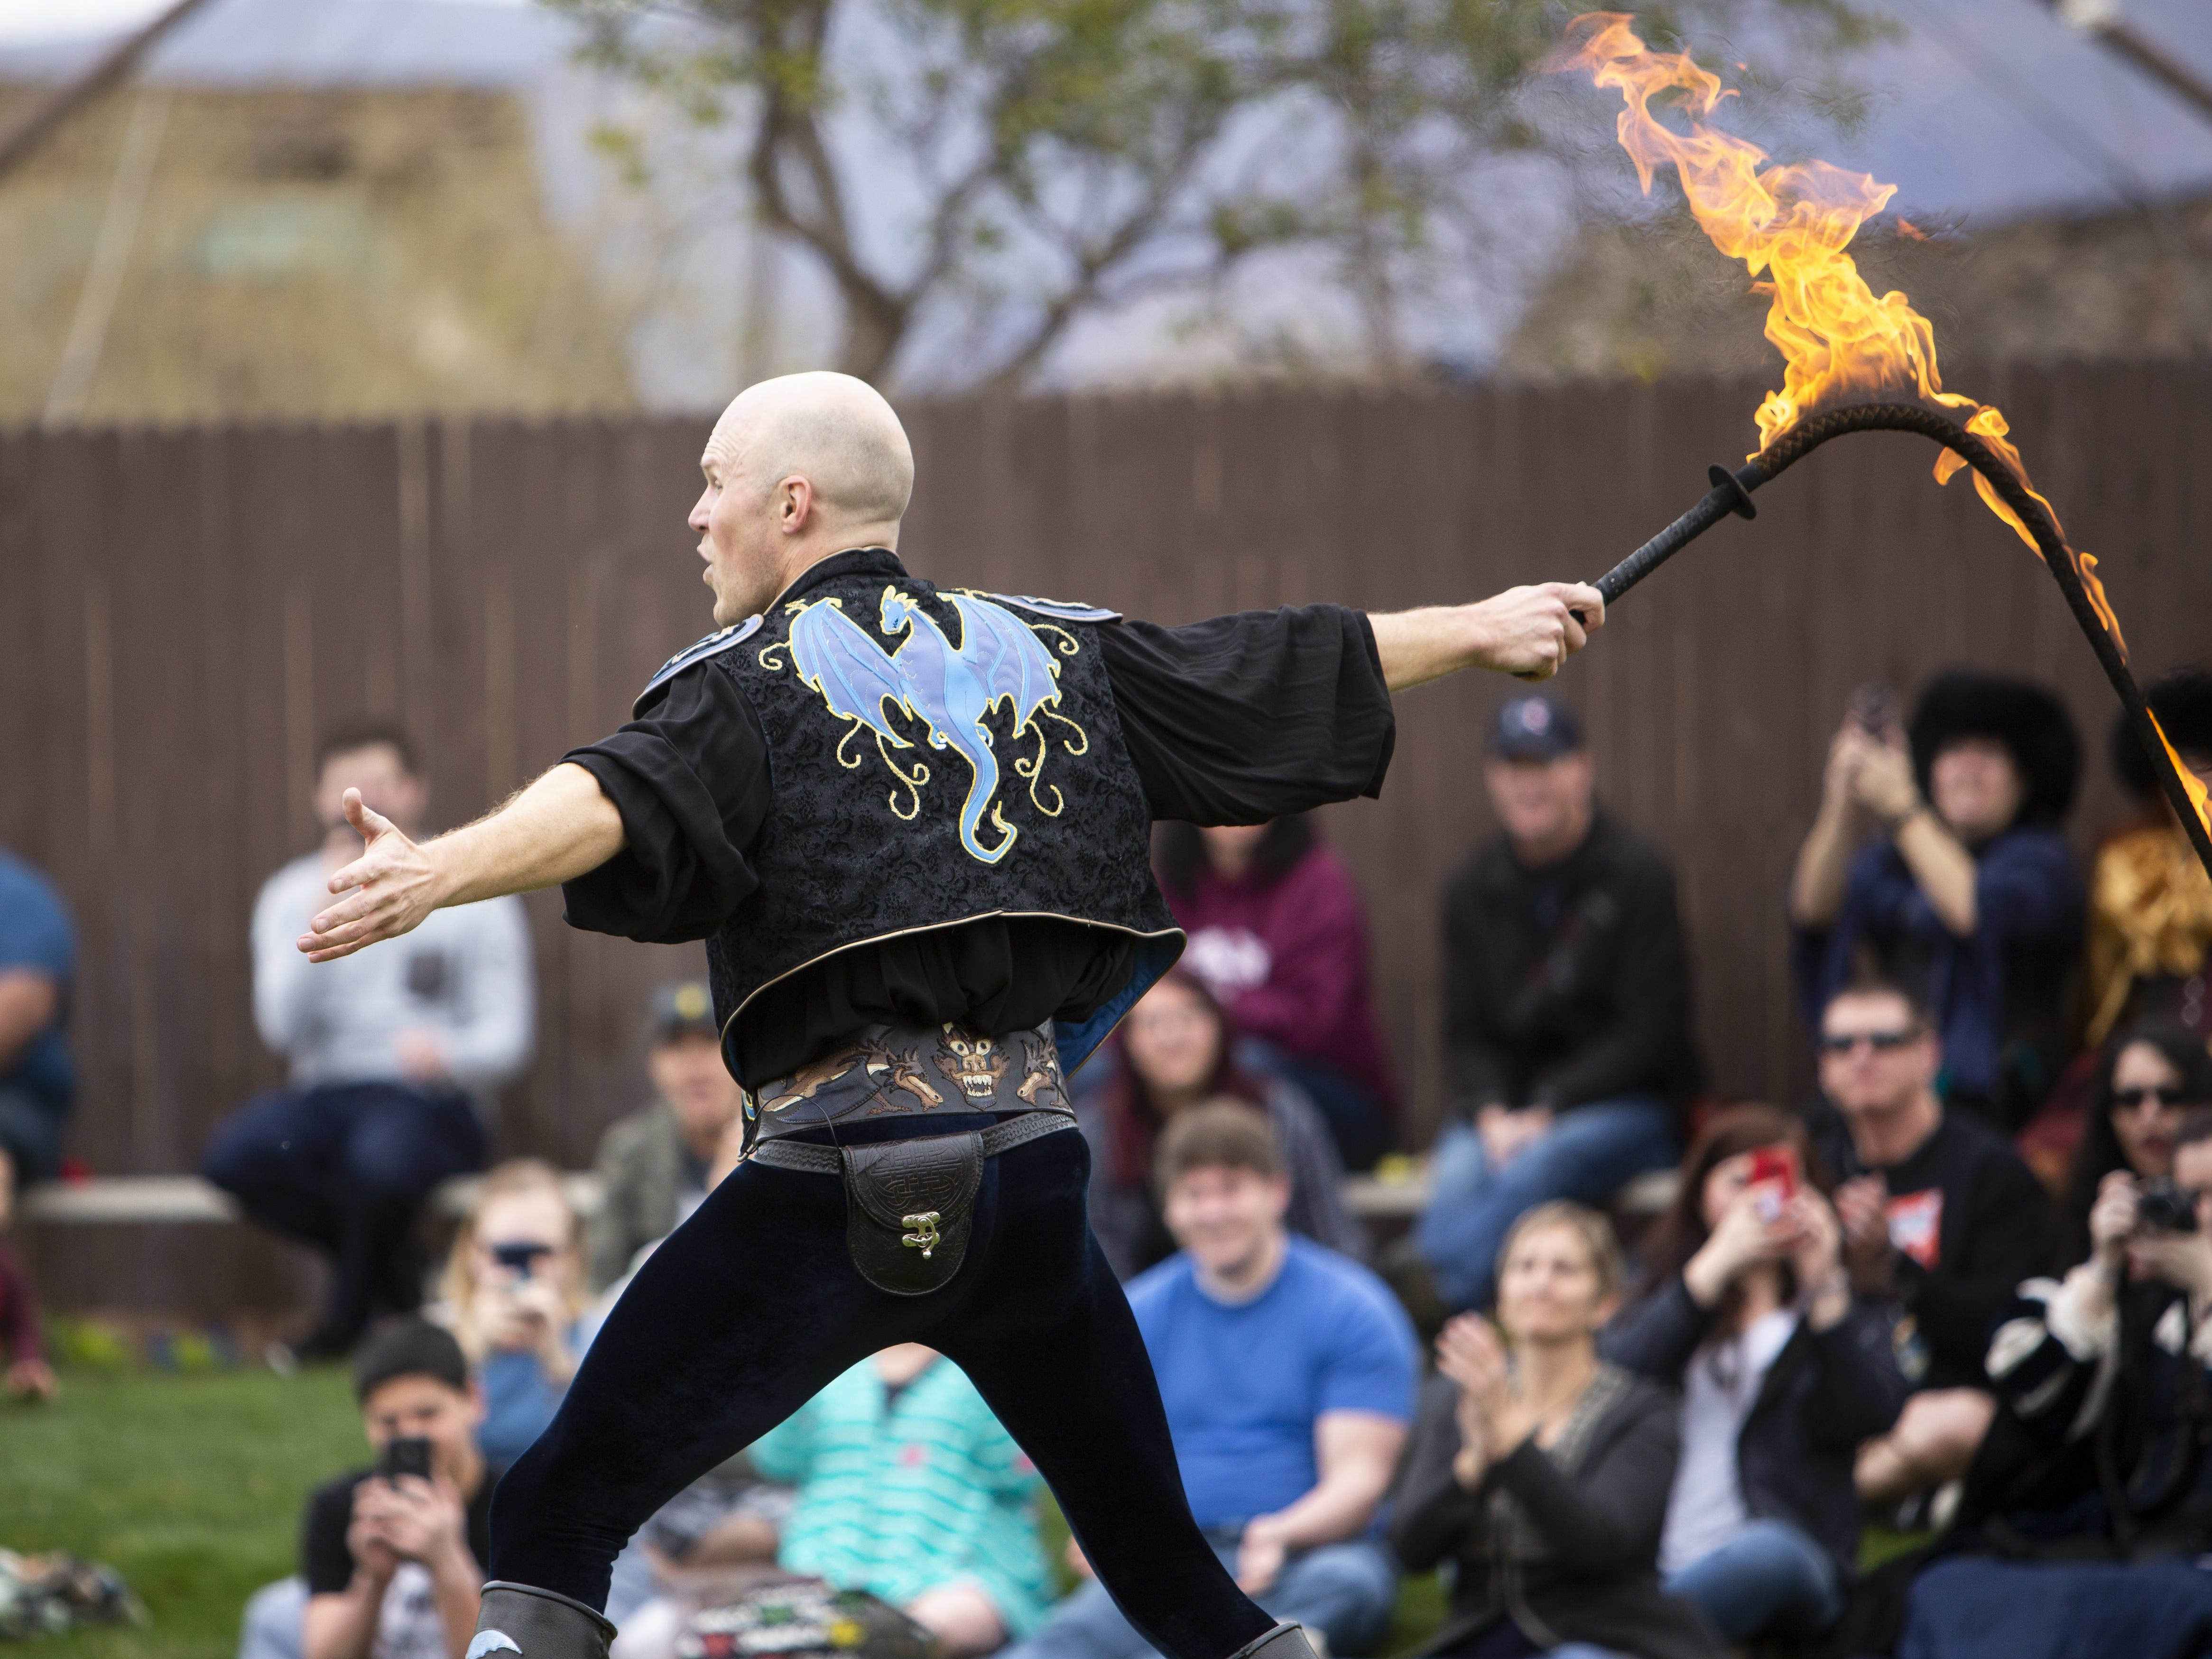 "Adam ""Crack"" Winrich performs his show with a whip on fire at the Arizona Renaissance Festival 2019 on Feb. 9, 2019 in Gold Canyon, Ariz."